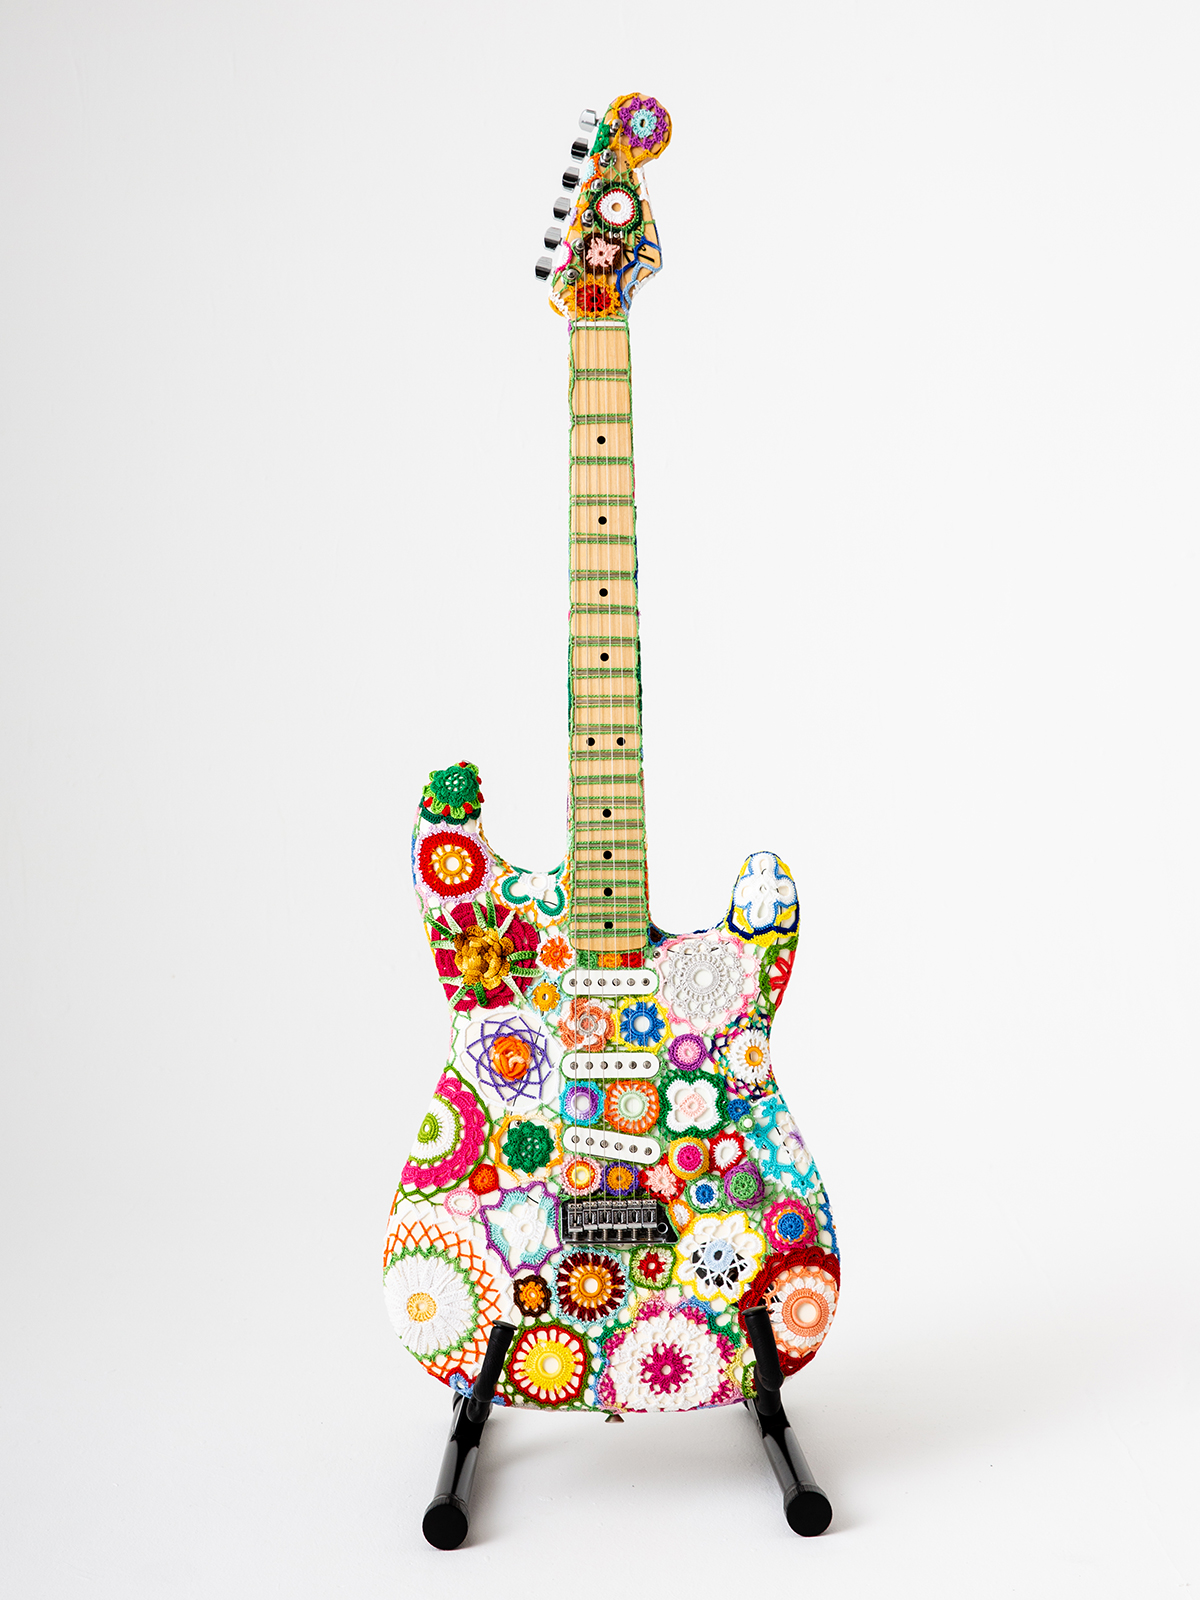 Bright Floral Crochet Wraps an Iconic Stratocaster Guitar in a Psychedelic Layer of Color